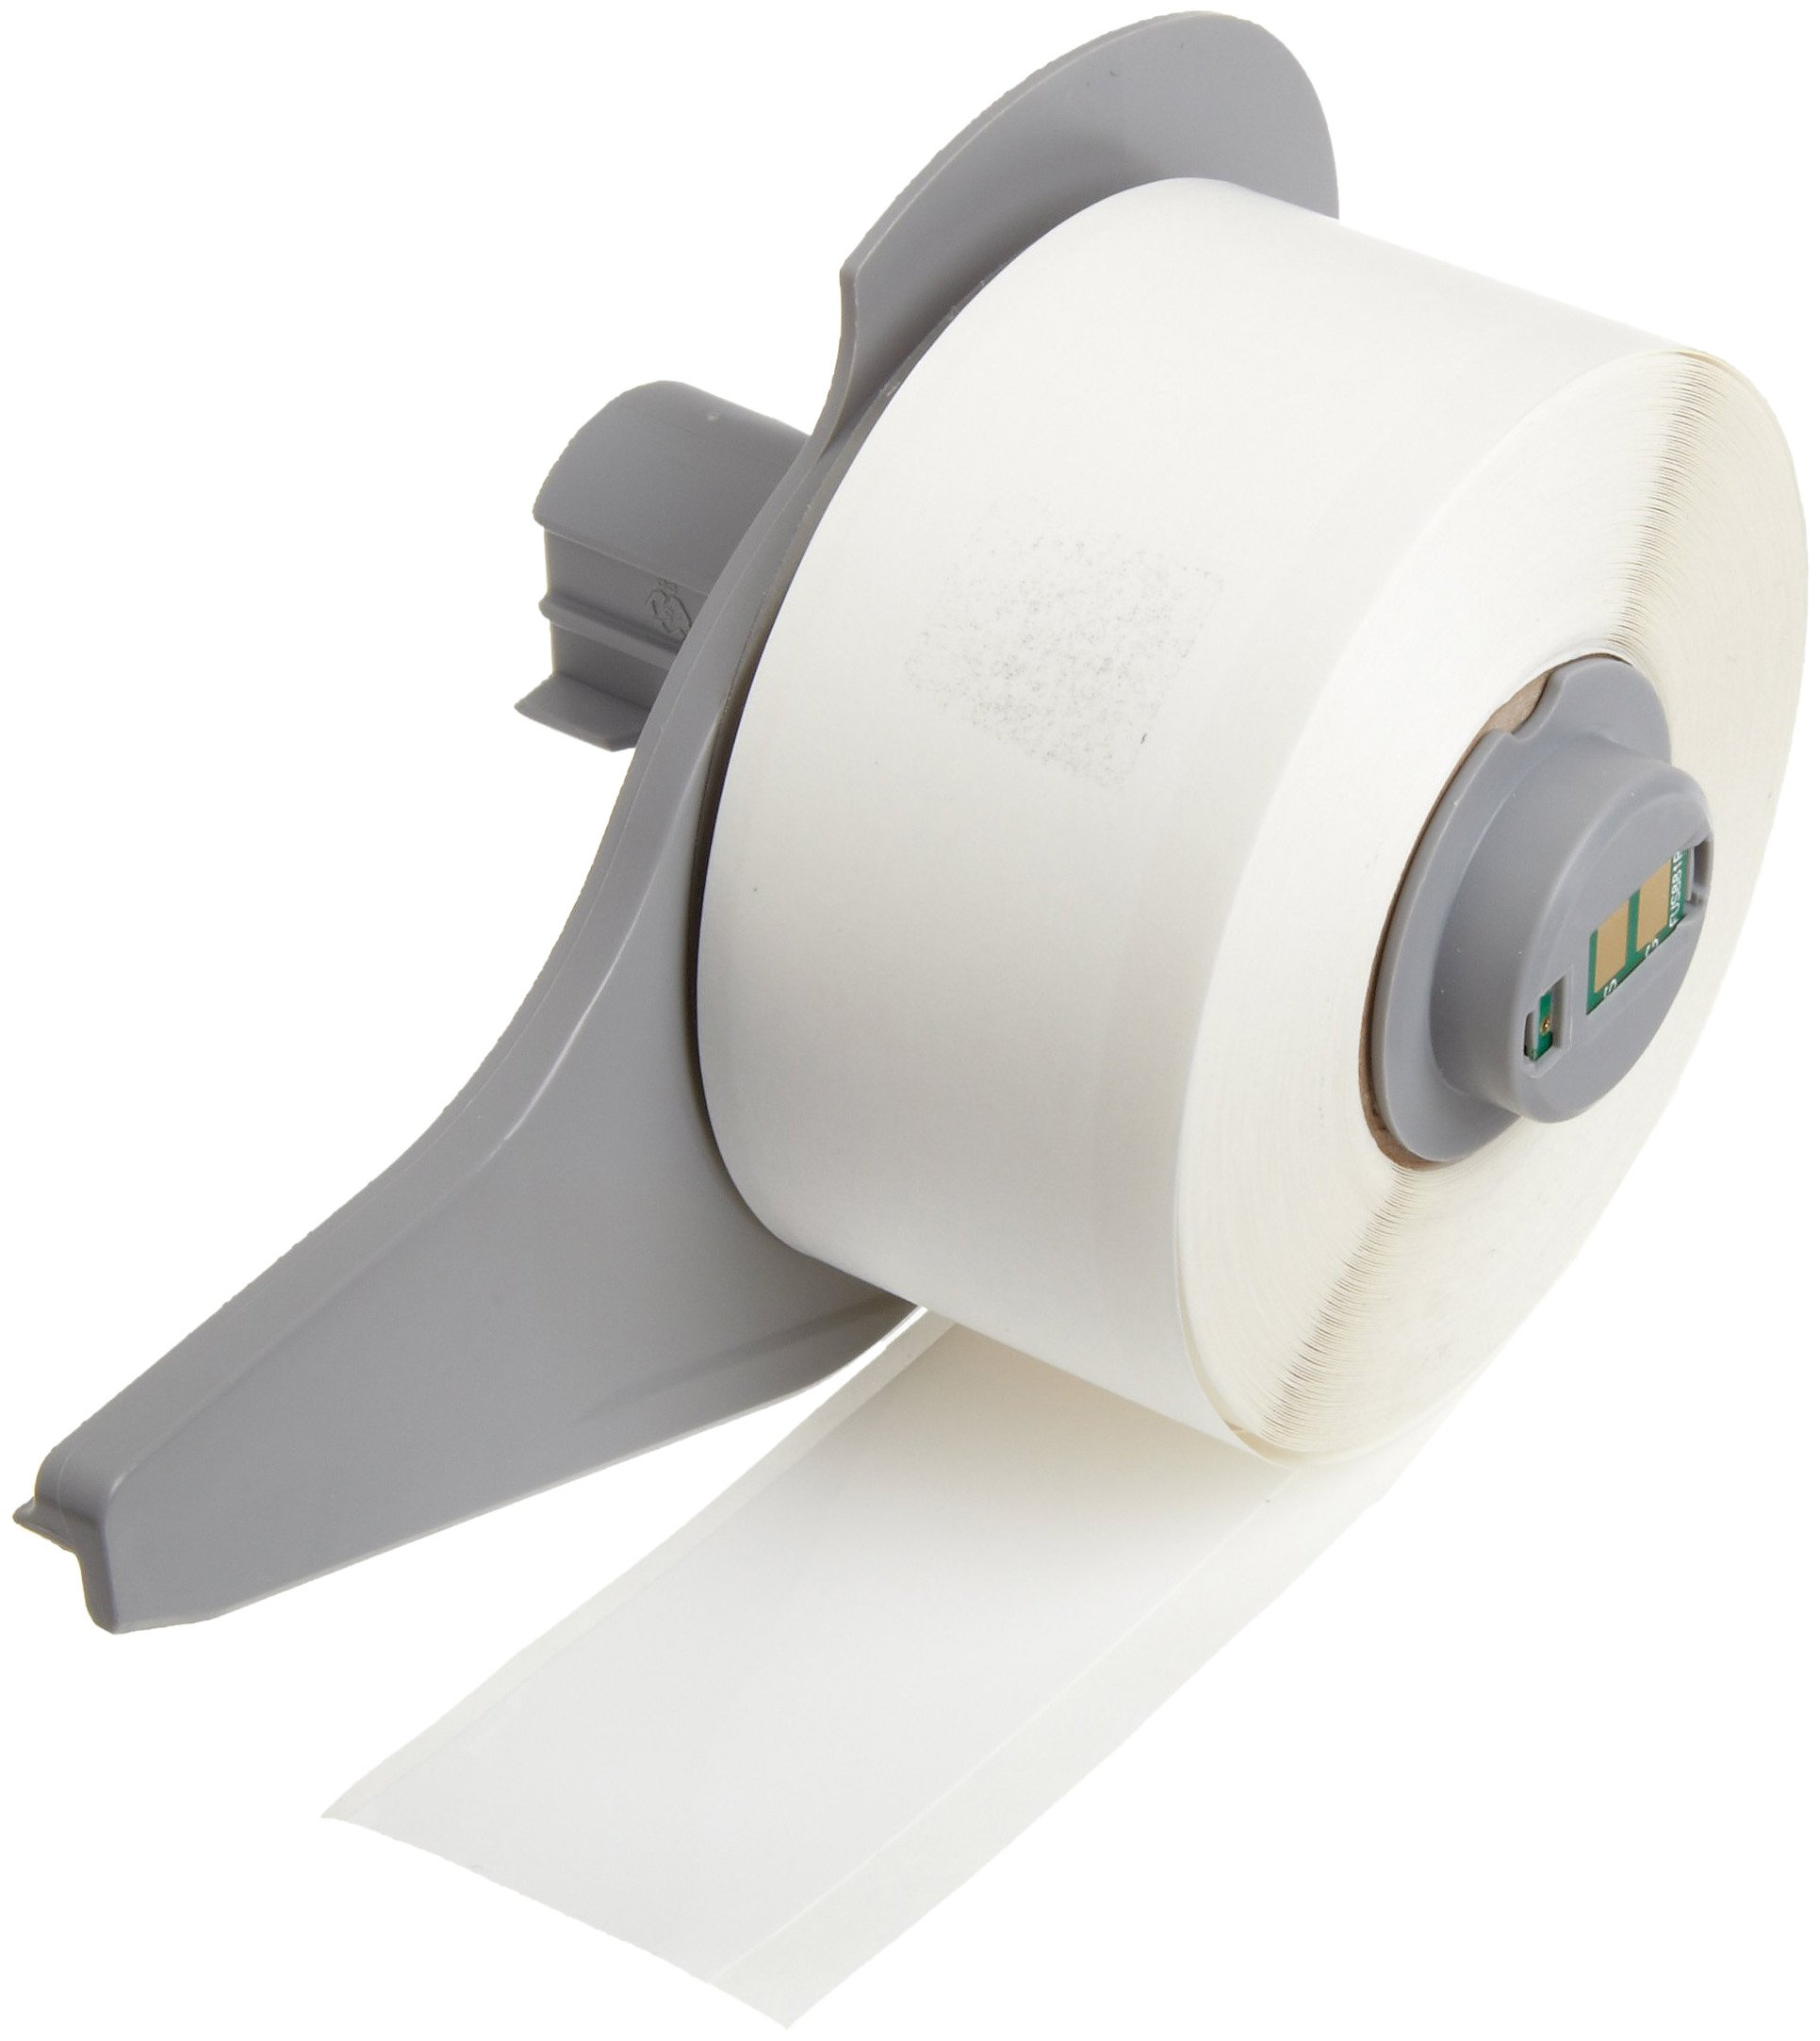 Brady M71C-1000-422 1'' Width x 50' Height White Color B-422 Permanent Polyester Labels With Gloss Finish For BMP71 Label Printer